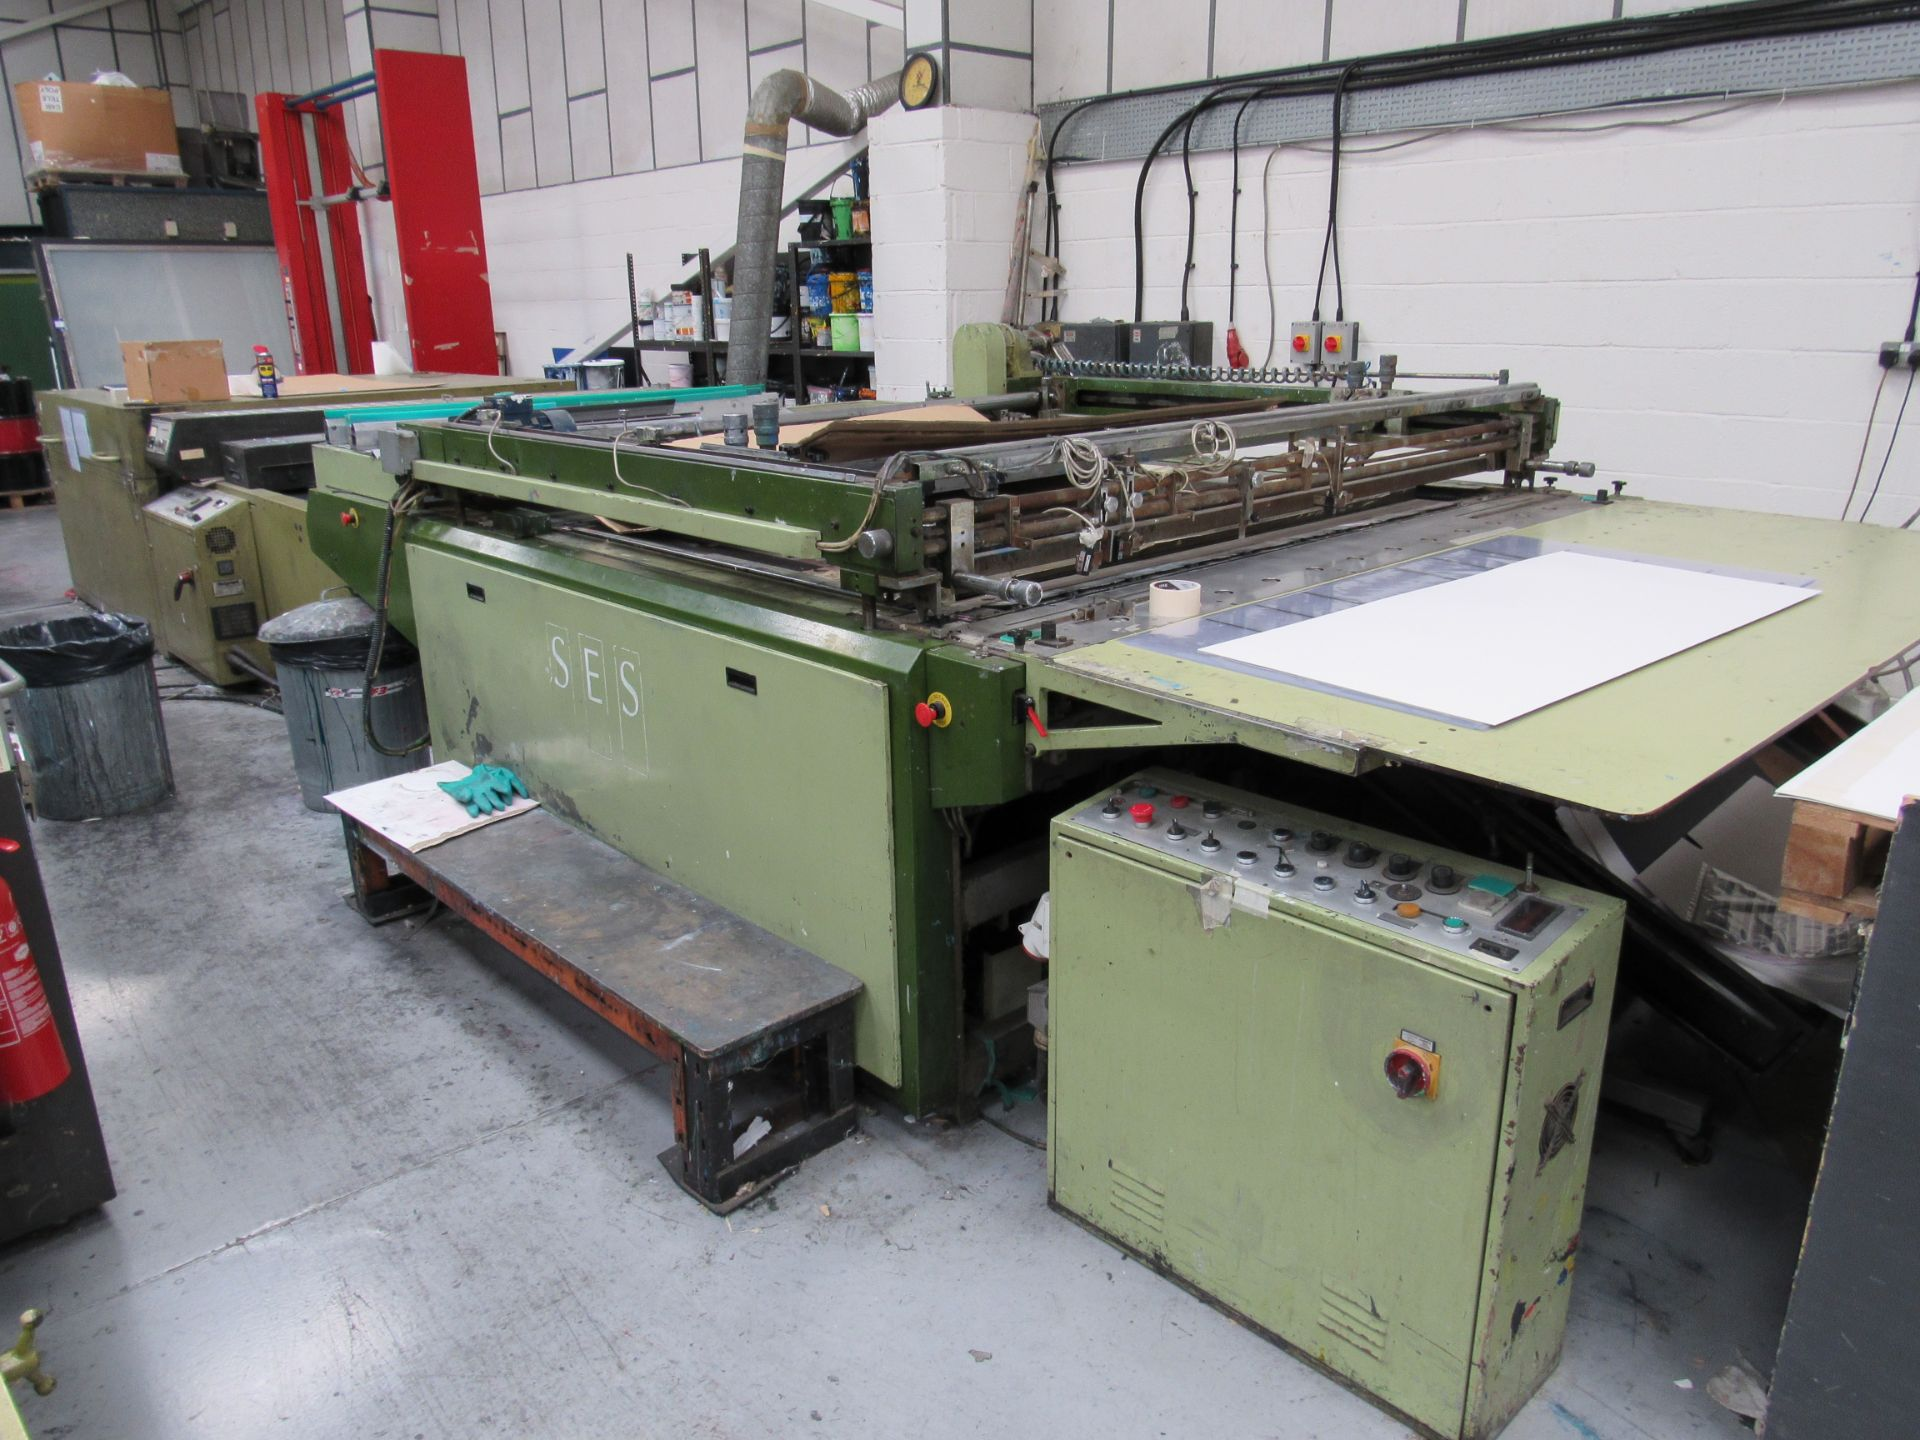 Sias Print Serifast 117.180 Screen Printer Serial Number 88745 with Natgraph 155-2000E UV Dryer Line - Image 6 of 10